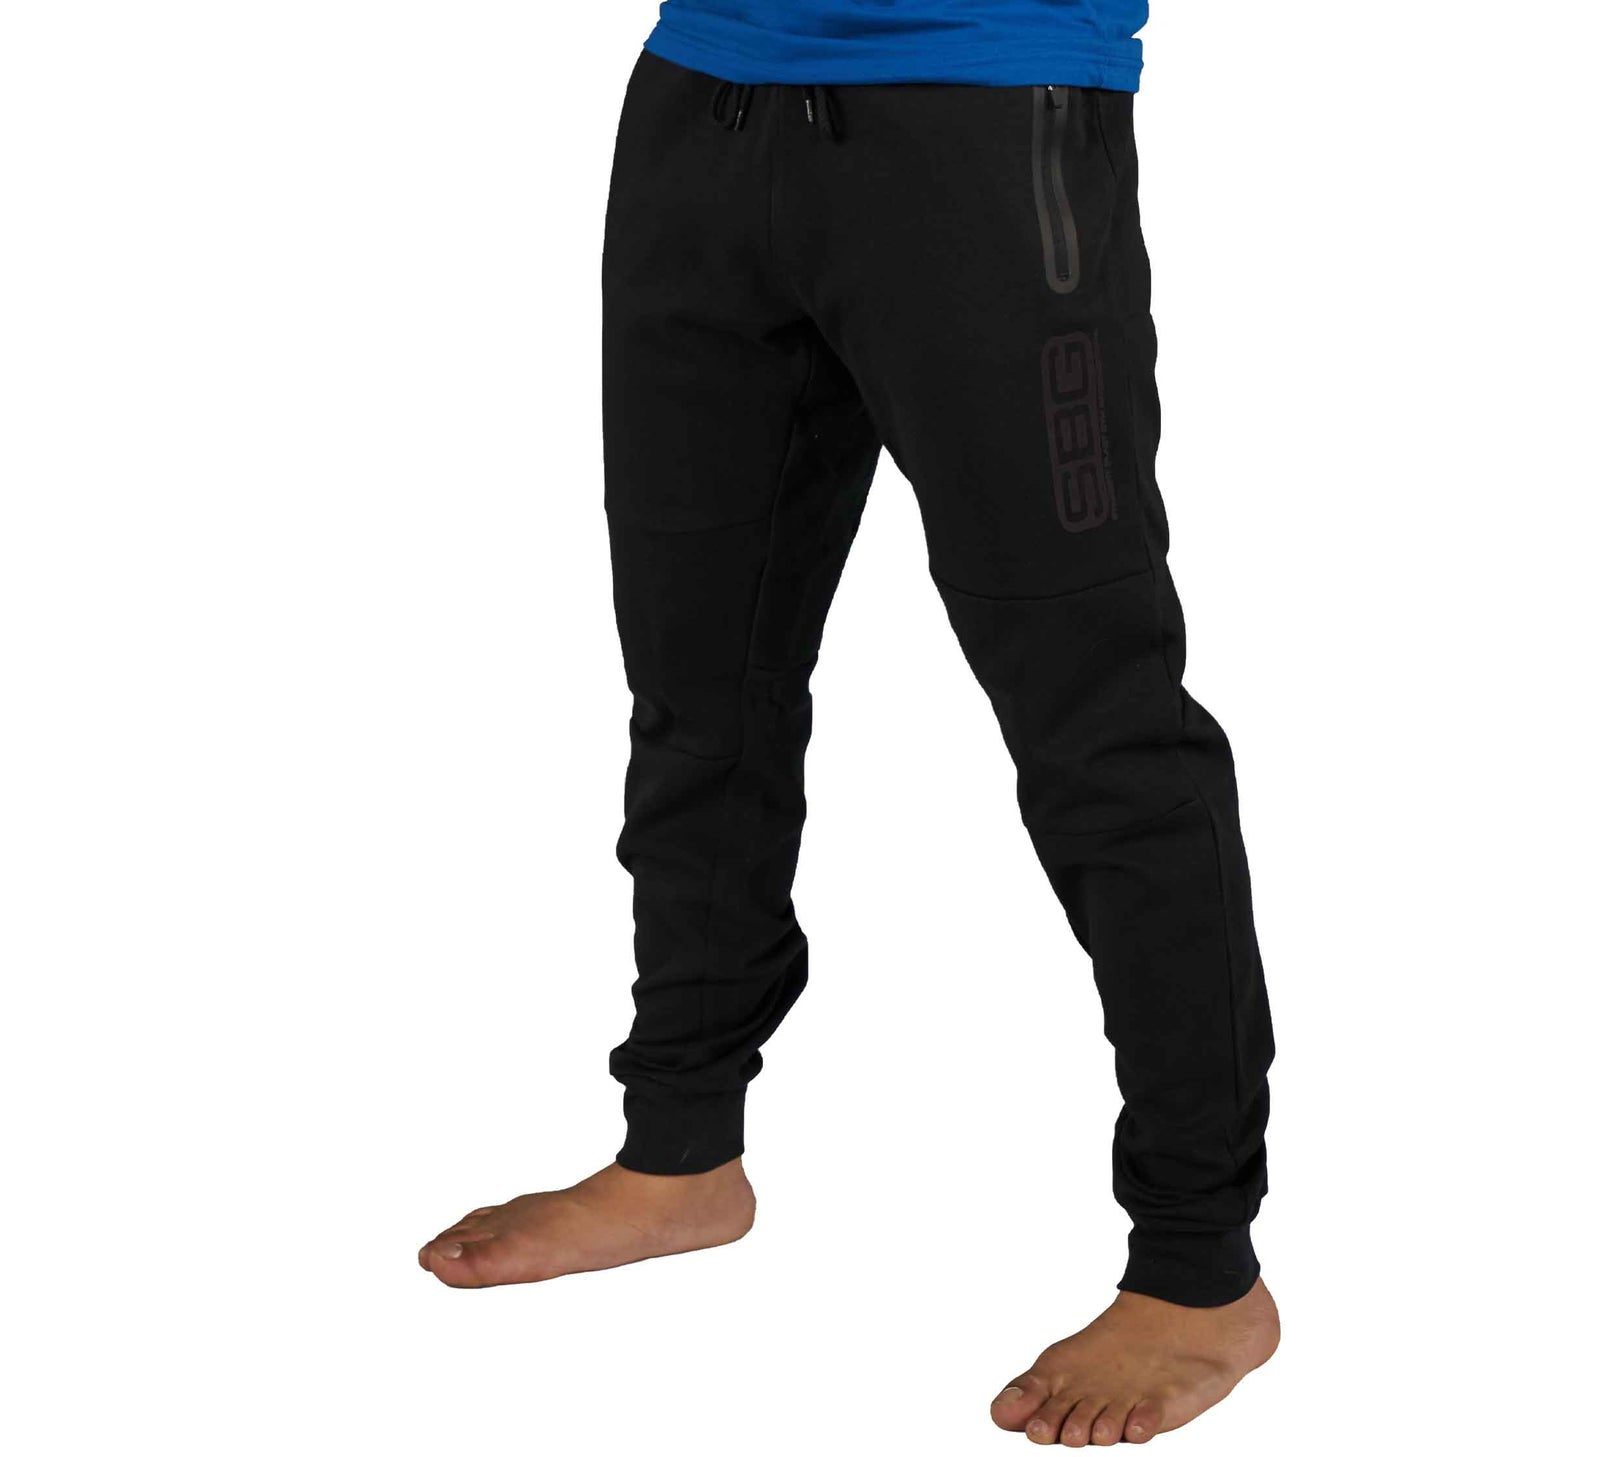 SBG Blackout Joggers